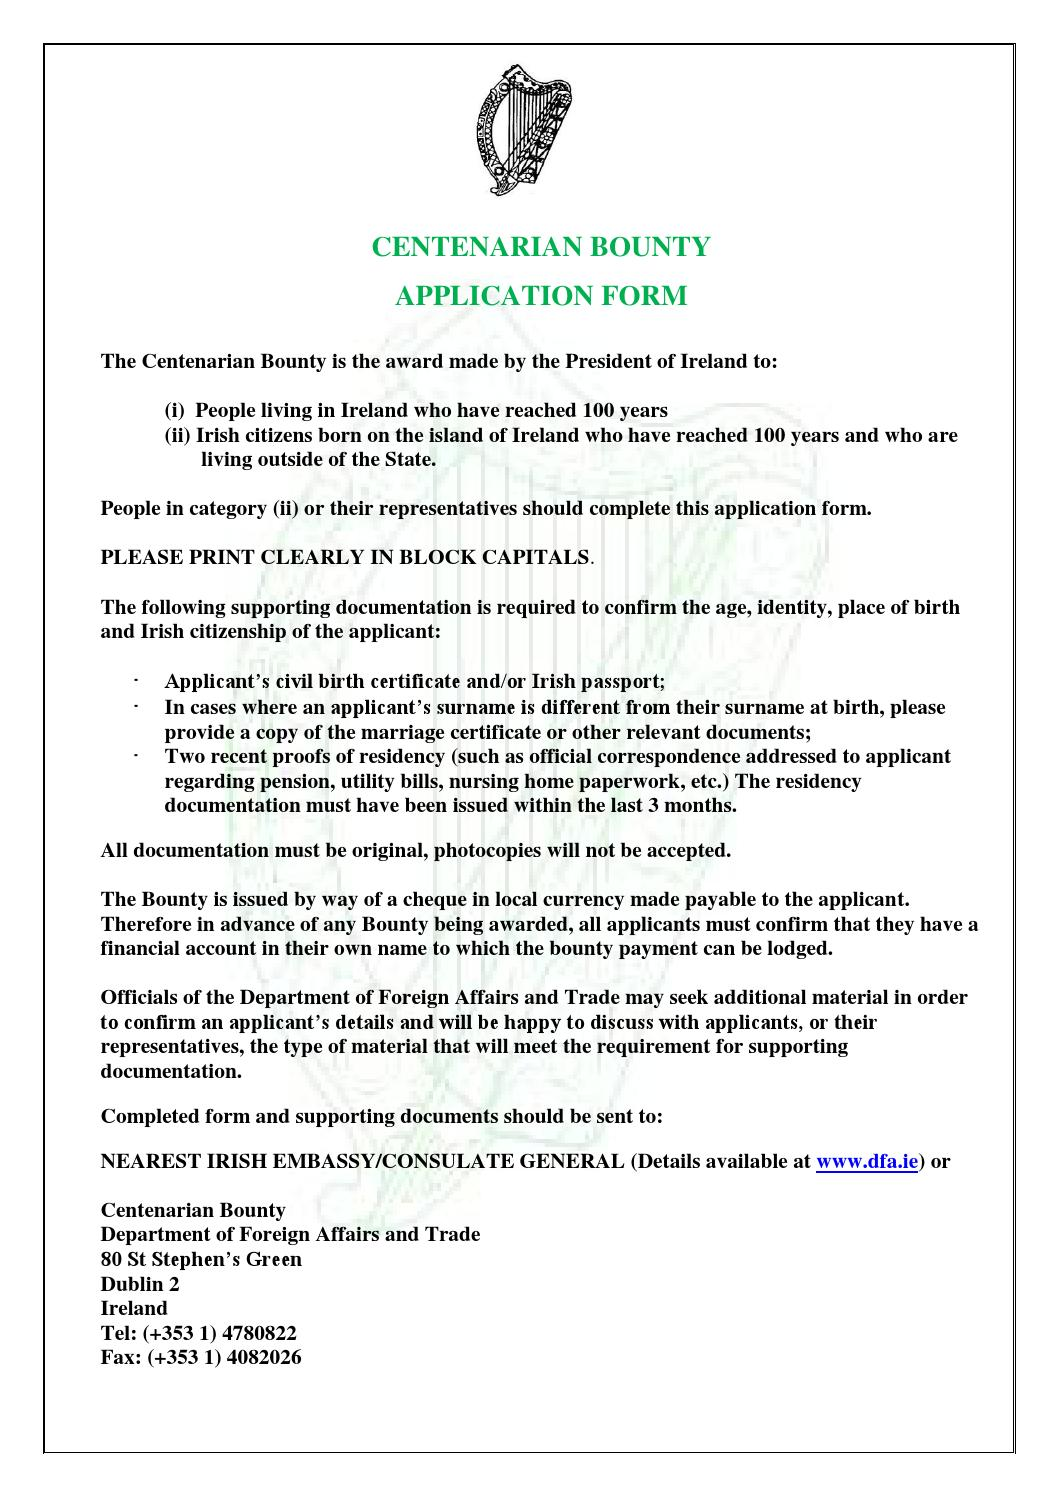 Centenarian Abroad Application Form 2012 By Ras An Uachtarin Issuu